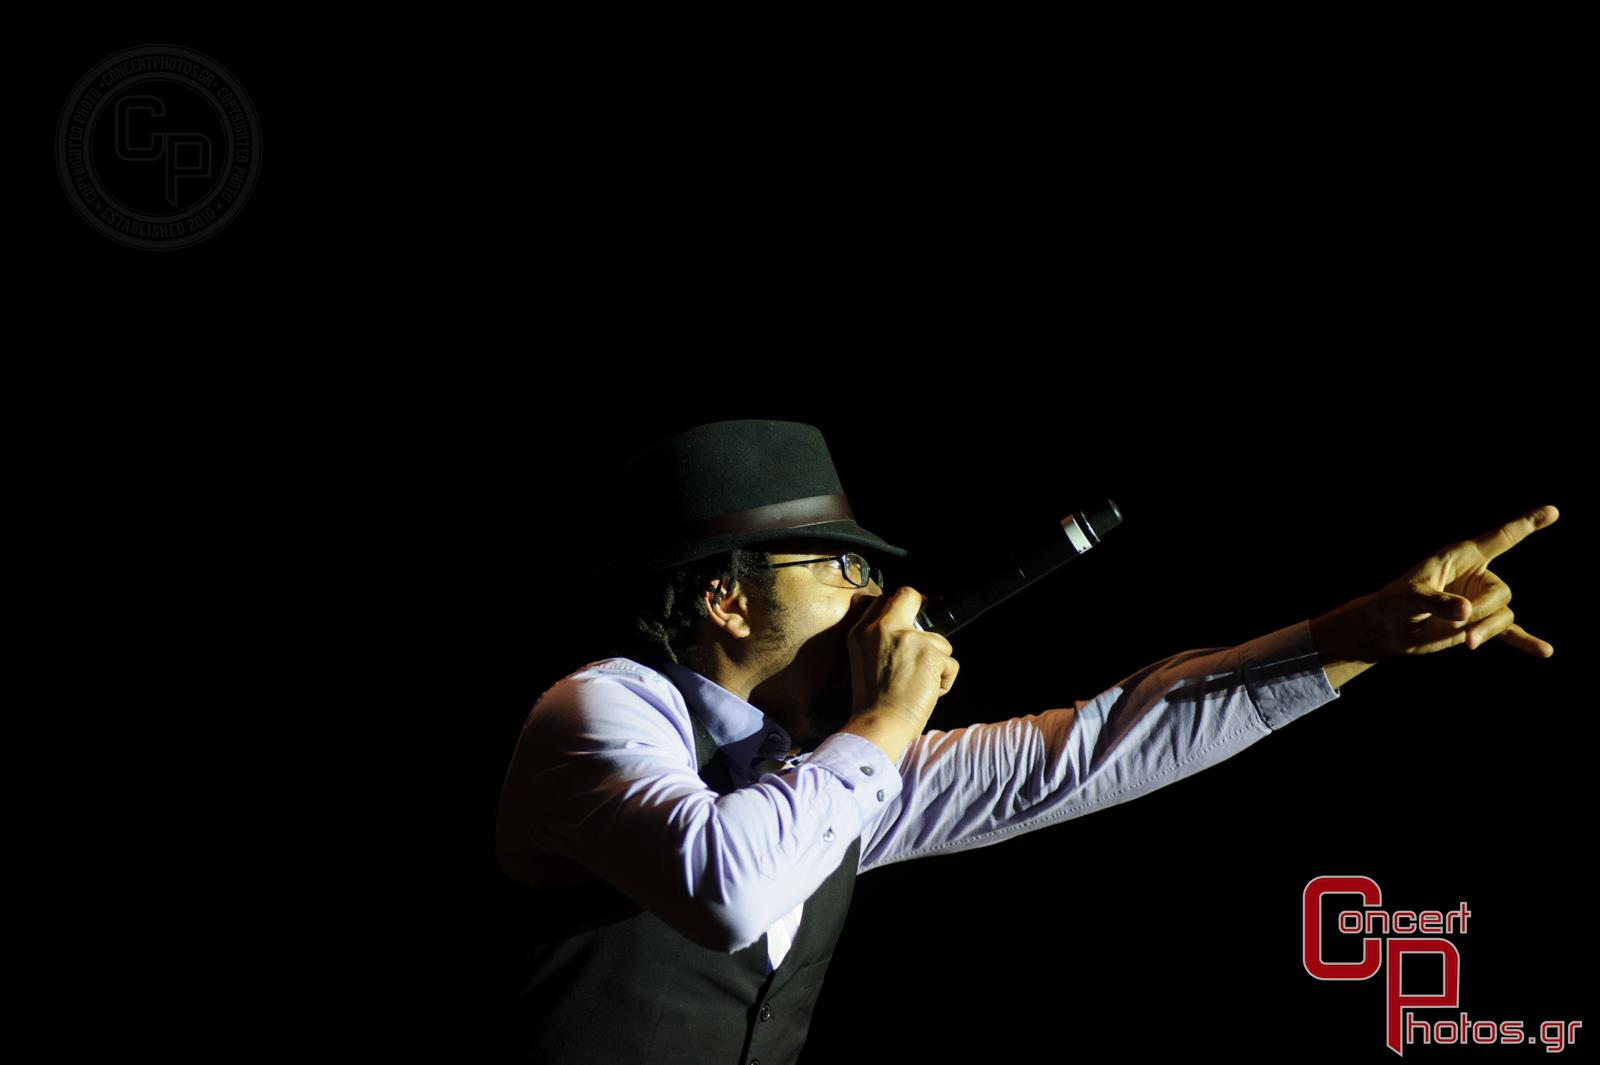 Thievery Corporation Imam Baildi Boogie Belgique Penny And The Swingin' Cats-Thievery Corporation Imam Baildi Boogie Belgique Penny And The Swingin' Cats photographer:  - concertphotos_20140617_23_30_10